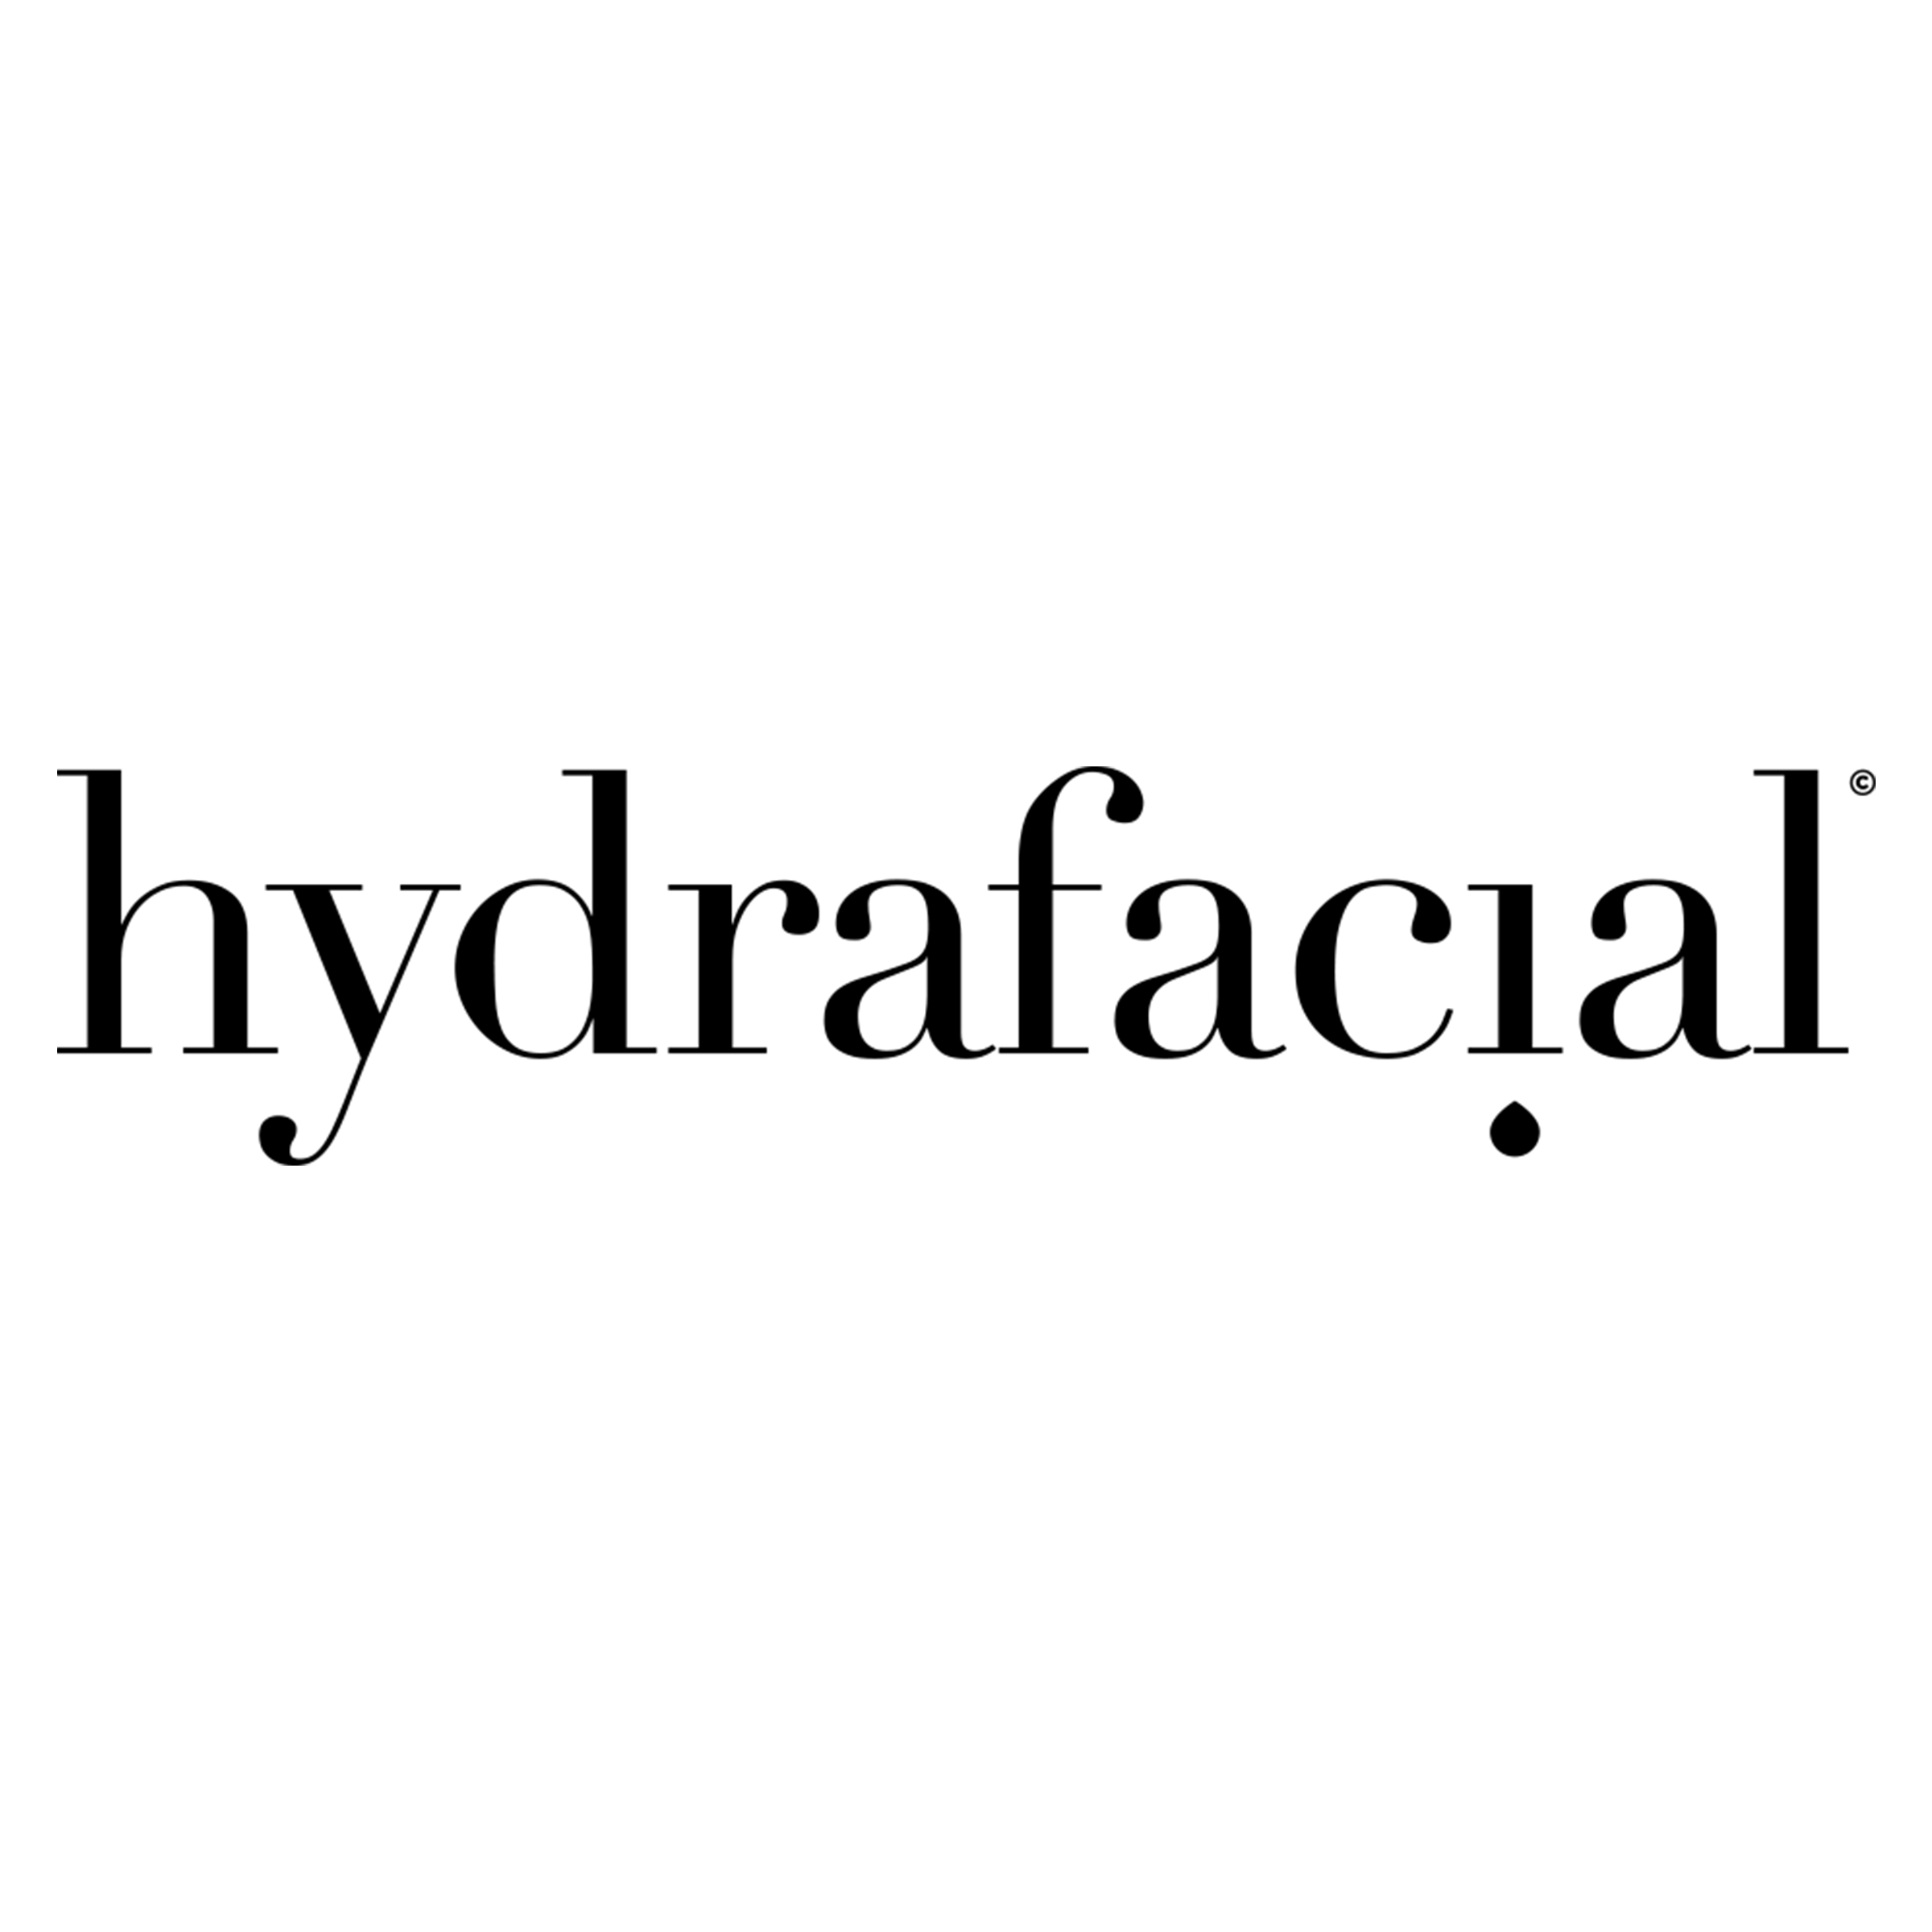 Hydrafacial-Square.png